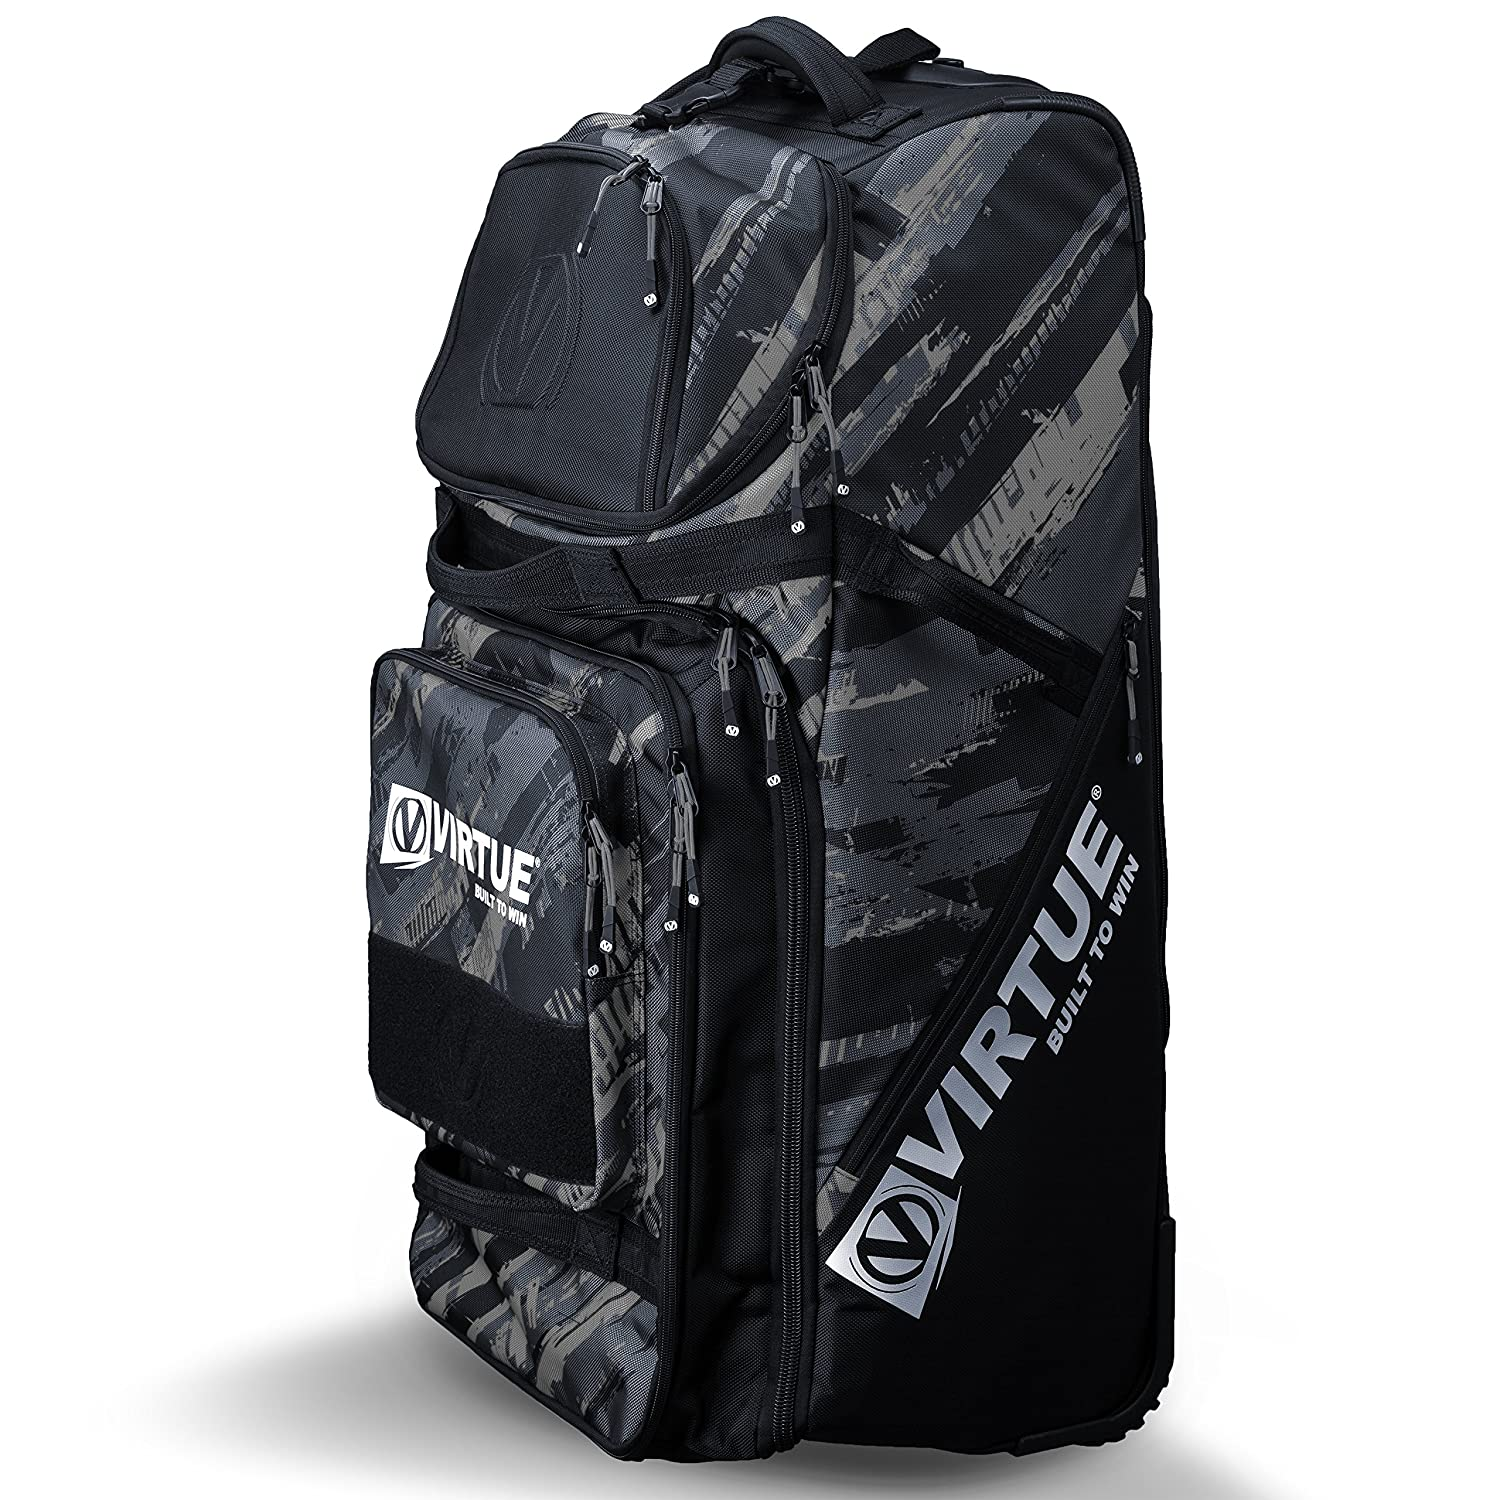 Amazon.com : Virtue High Roller V2 Extra Large Travel Gear ...